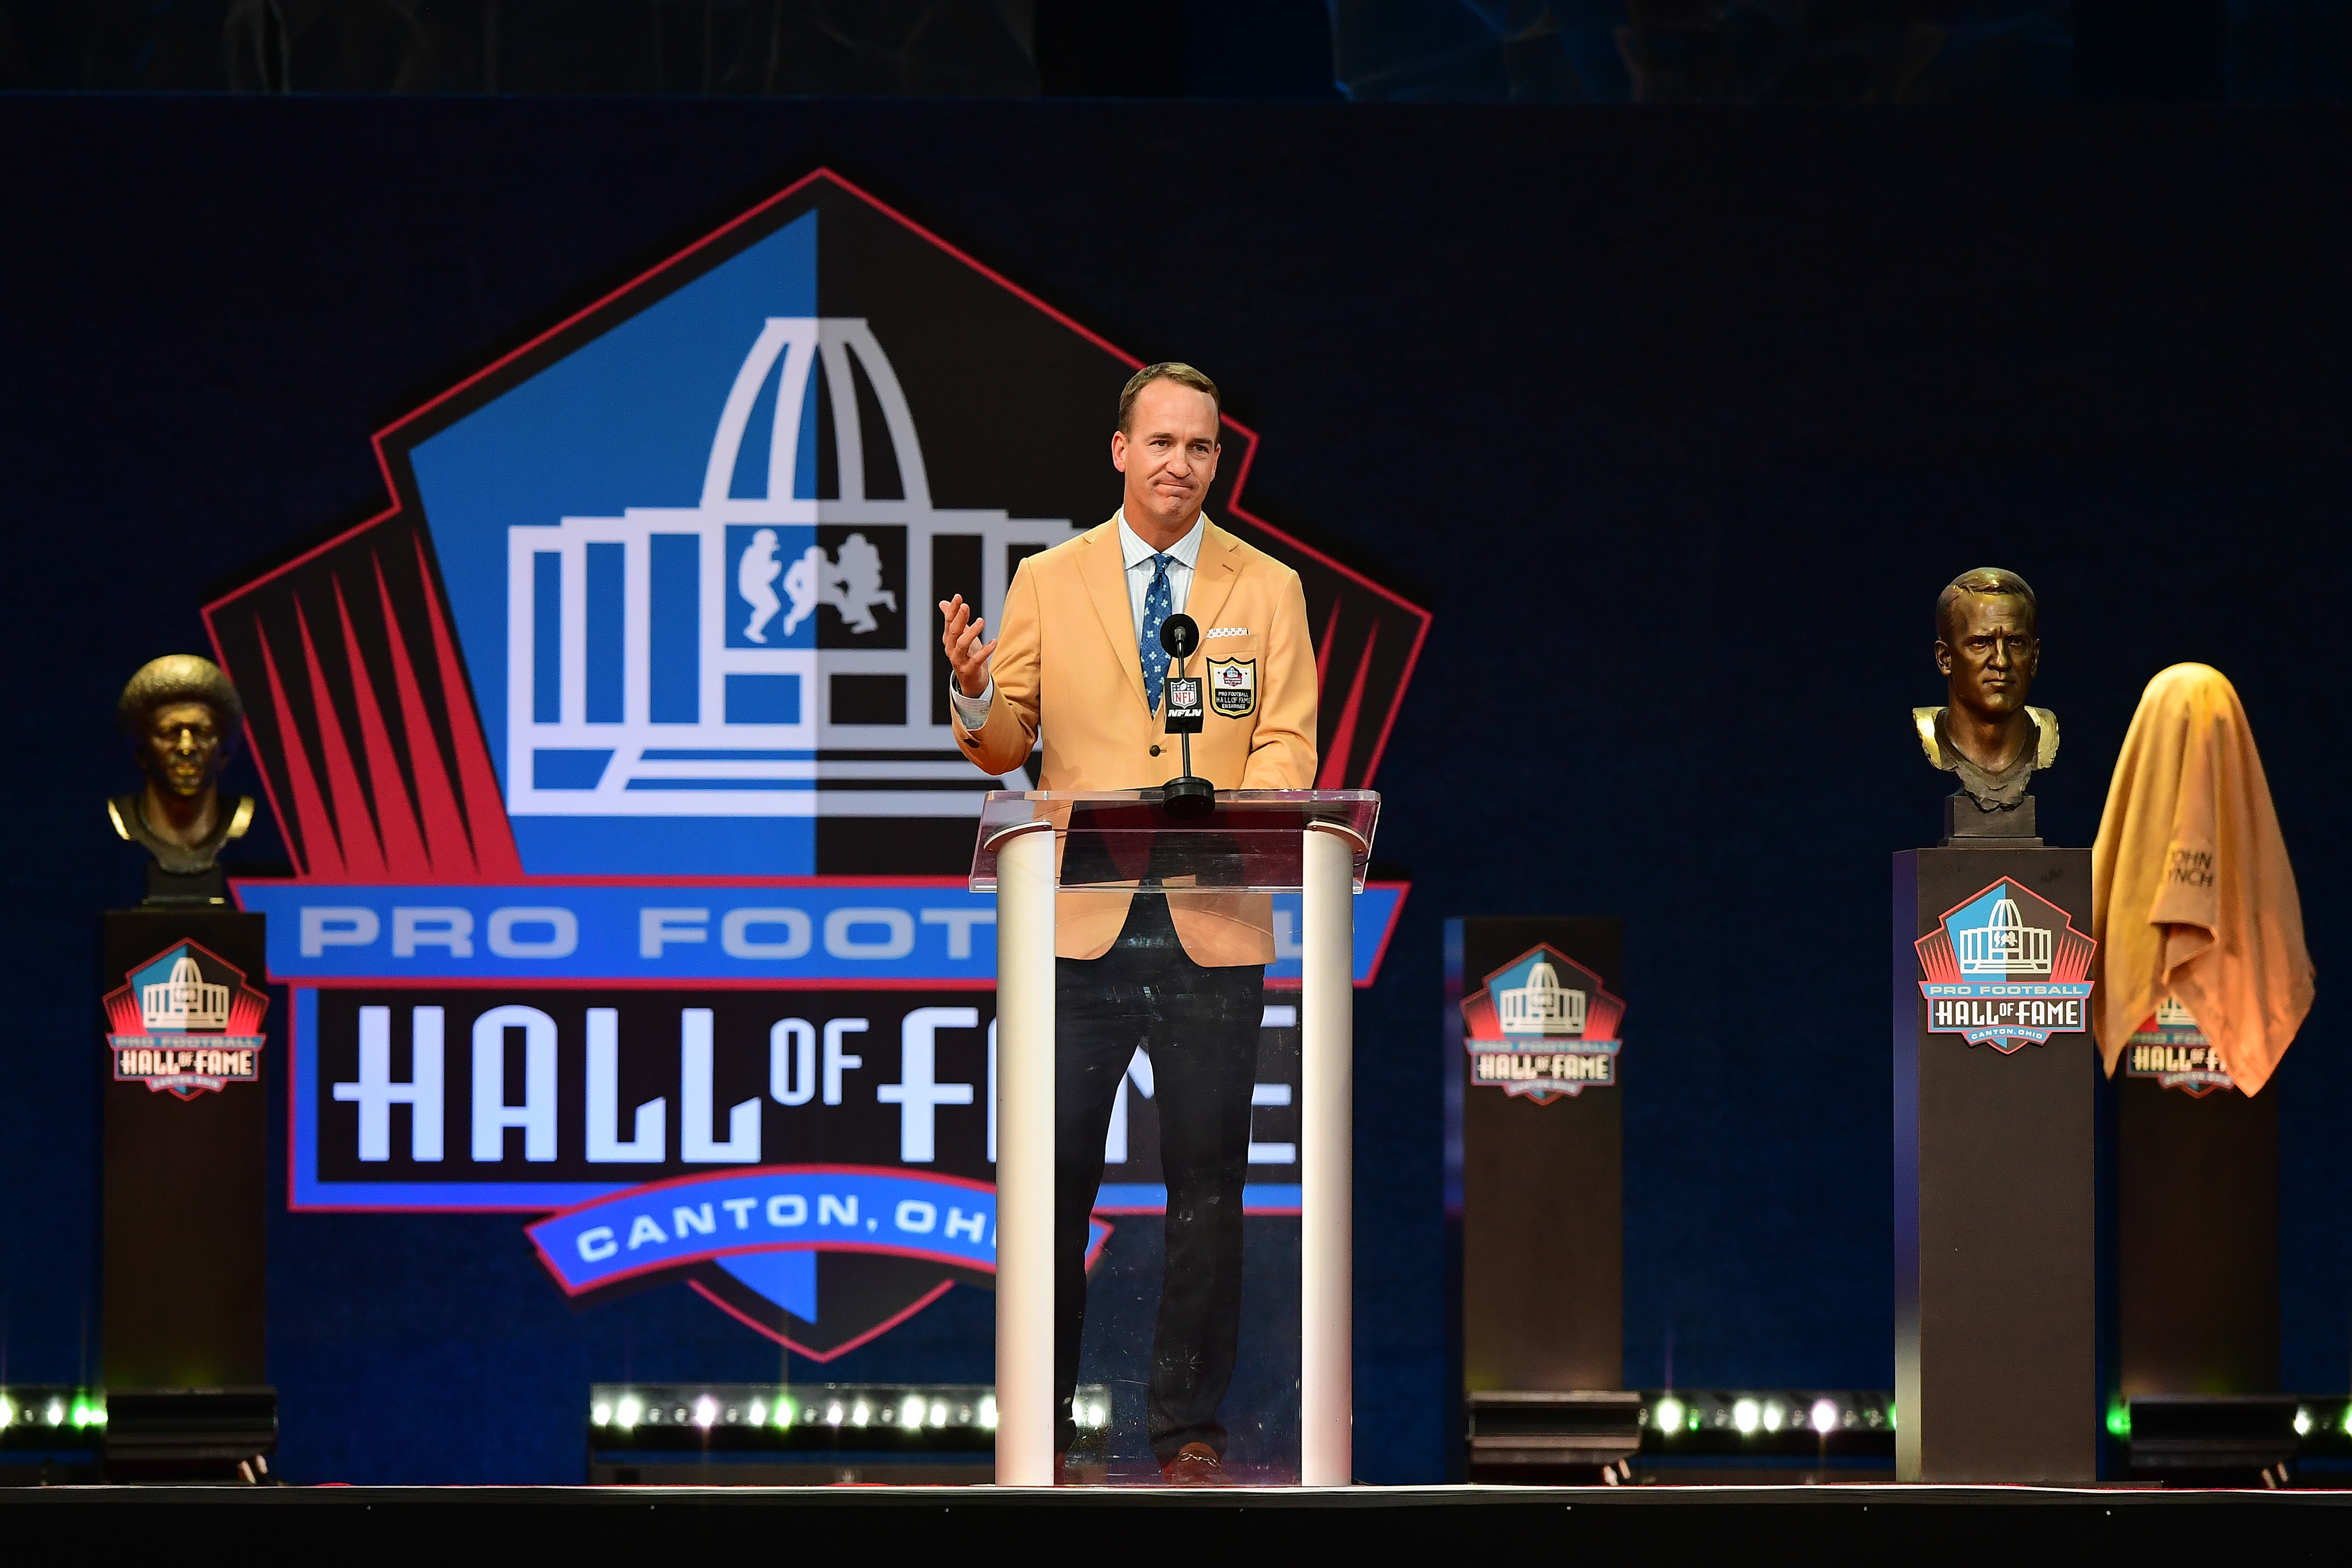 Peyton Manning speaks during the NFL Hall of Fame Enshrinement Ceremony at Tom Benson Hall Of Fame Stadium on August 08, 2021 in Canton, Ohio.